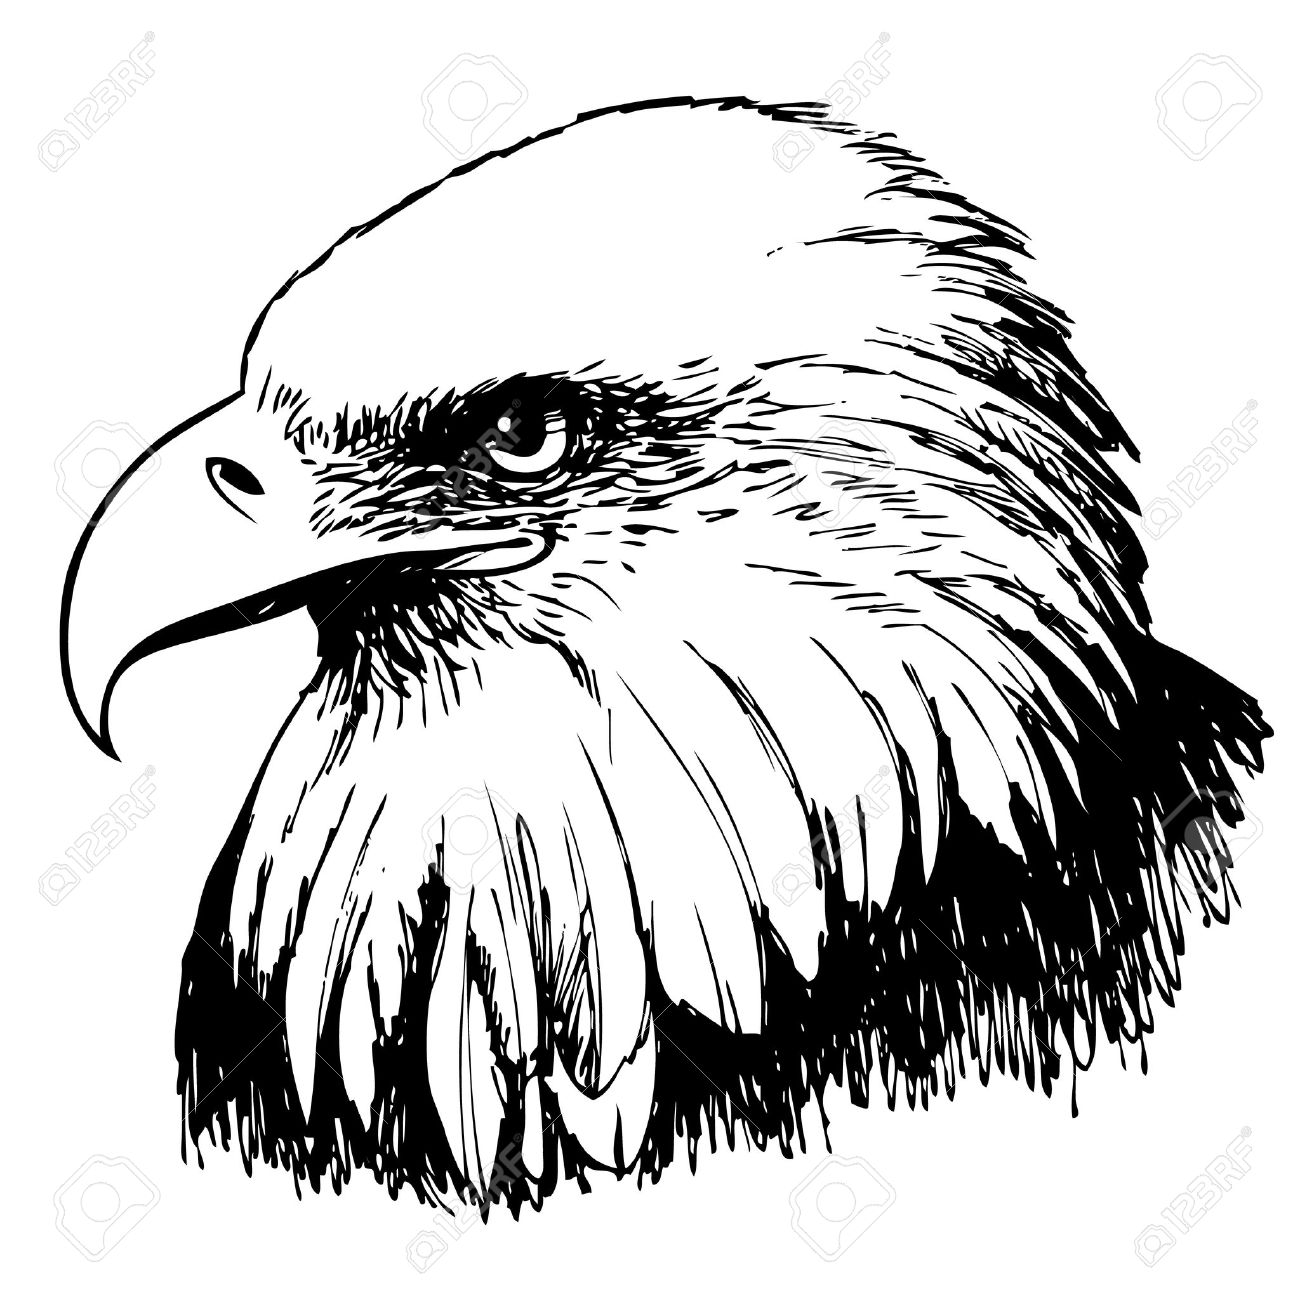 Black and white eagle hand drawn on white background stock vector 44260785